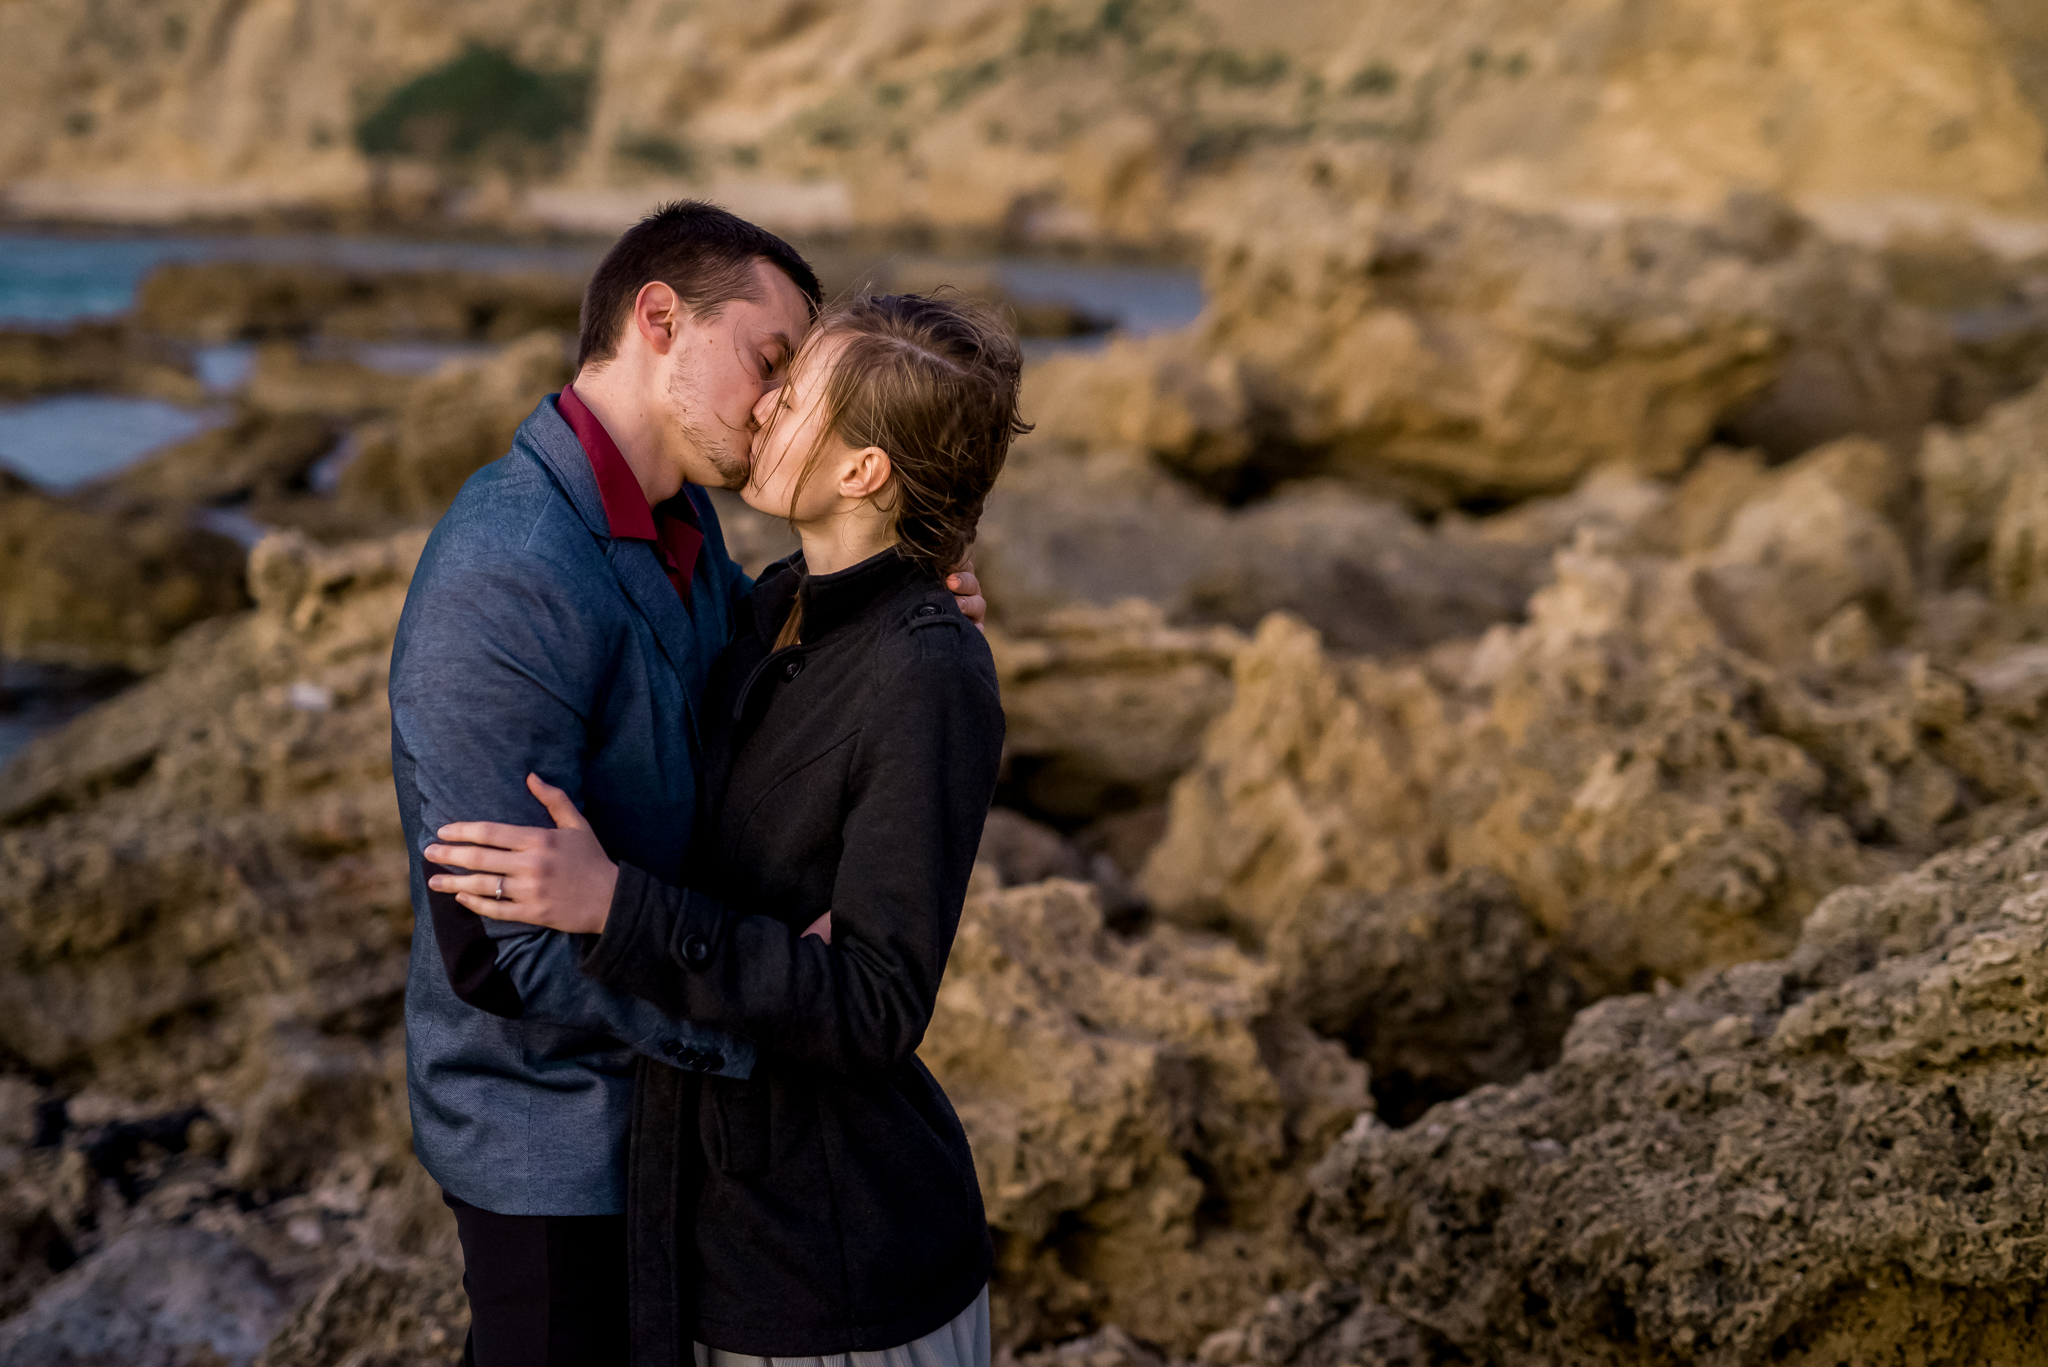 Cliffside-beach-engagement-session-hadera-israel-kate-giryes-photography-9633.jpg